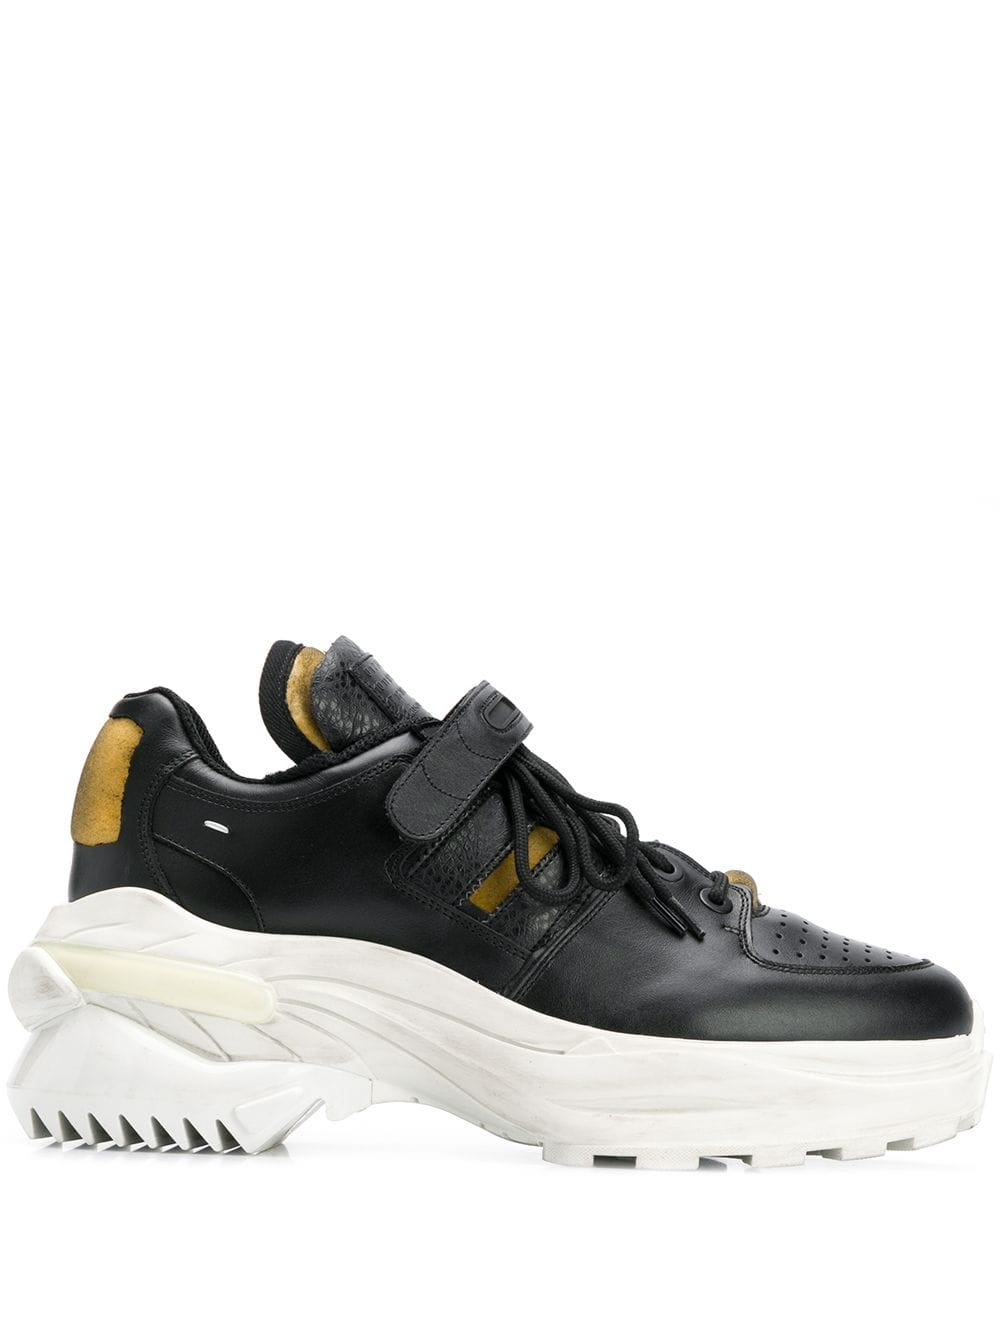 MAISON MARGIELA MEN RETRO FIT LOW TOP SNEAKERS